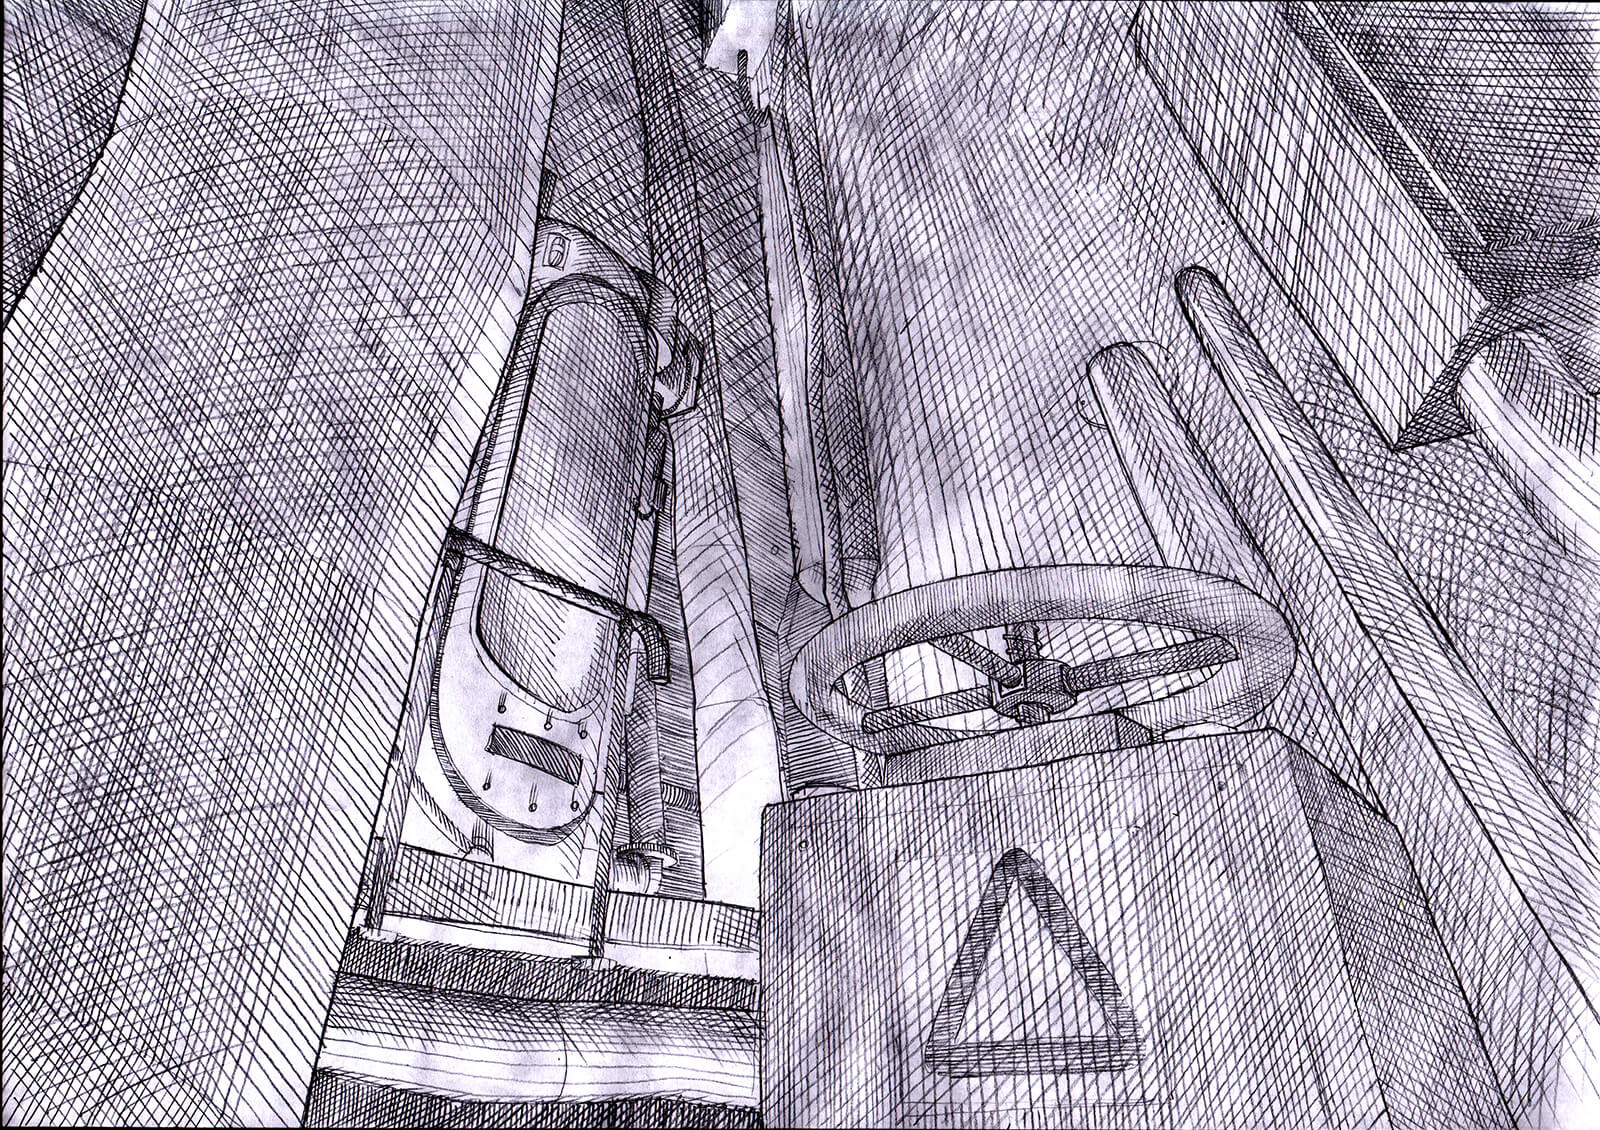 Black-and-white concept sketch for the film Core, depicting a safety valve and door in an industrial space